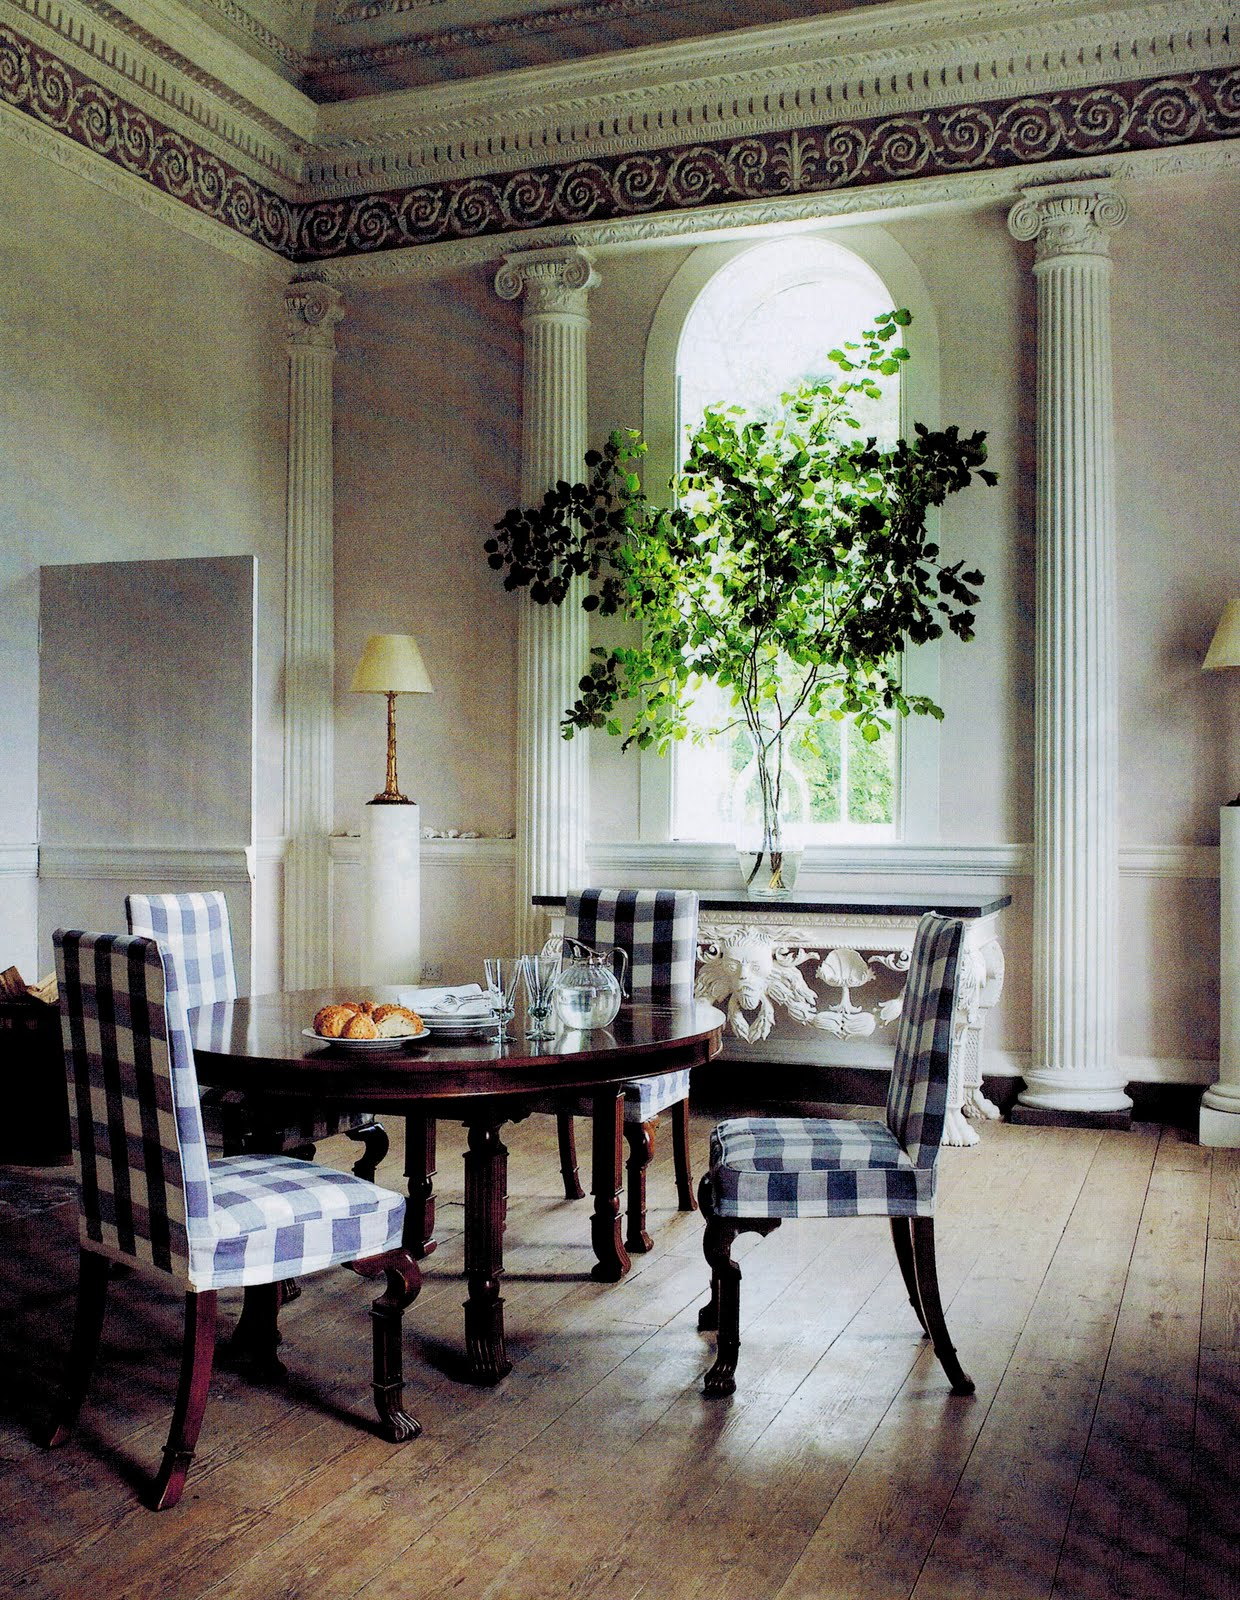 dining room made up into a Roman blind or curtains, or on a table